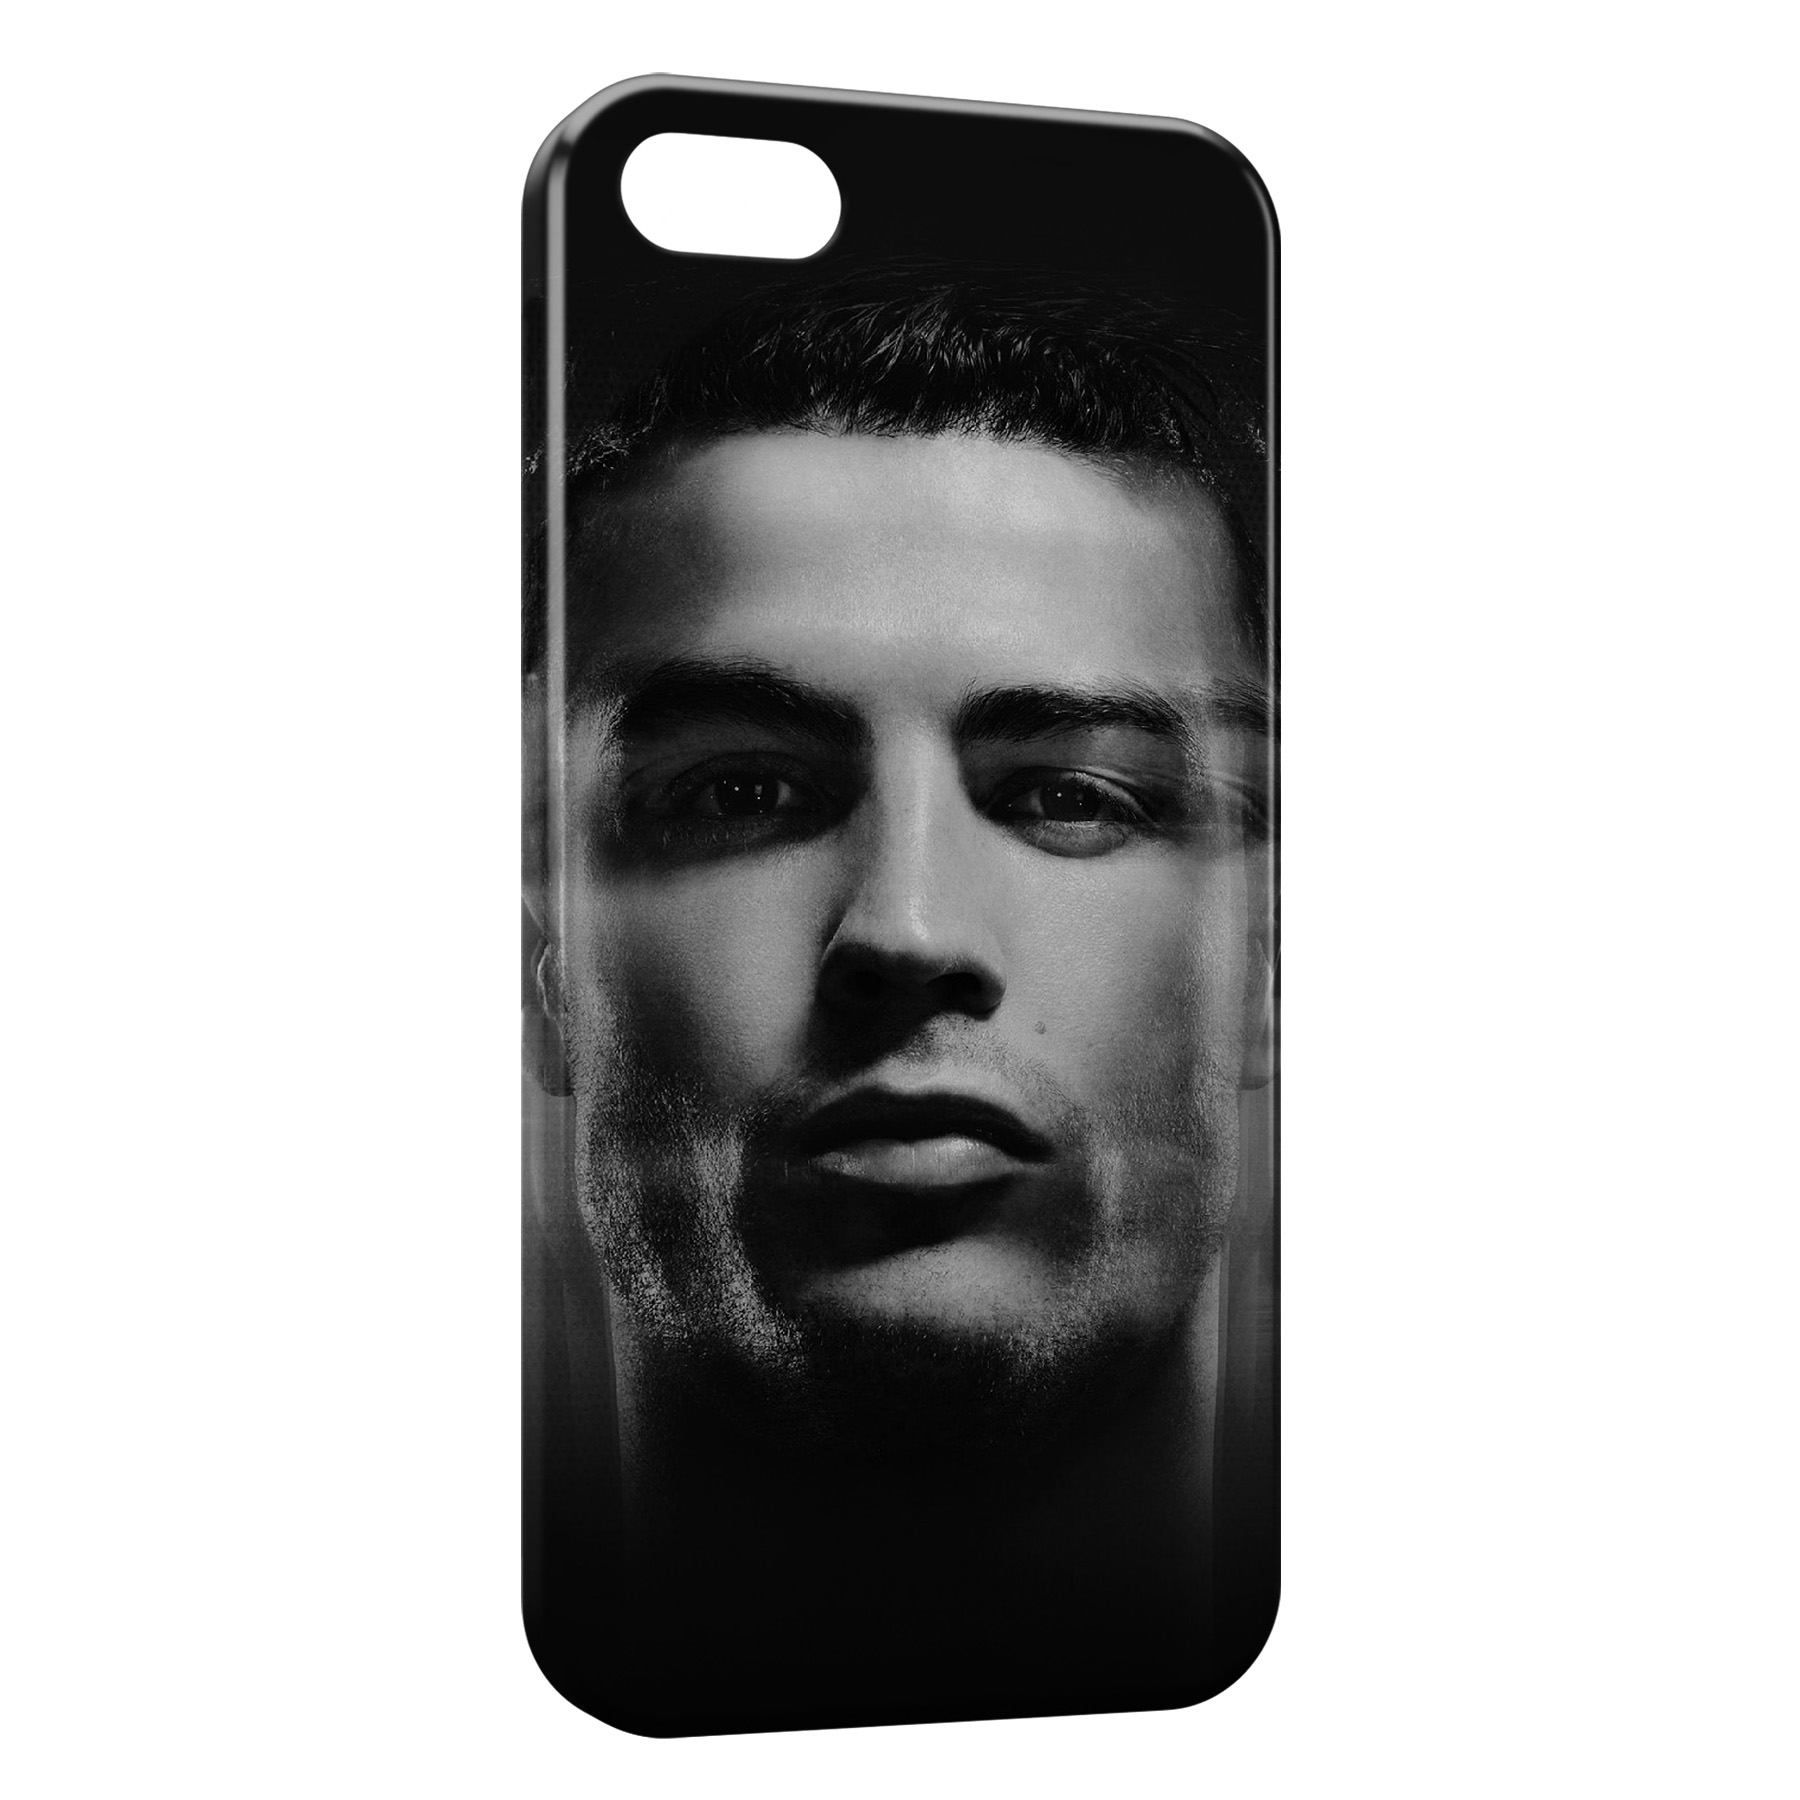 Coque iPhone 6 6S Cristiano Ronaldo Football 3